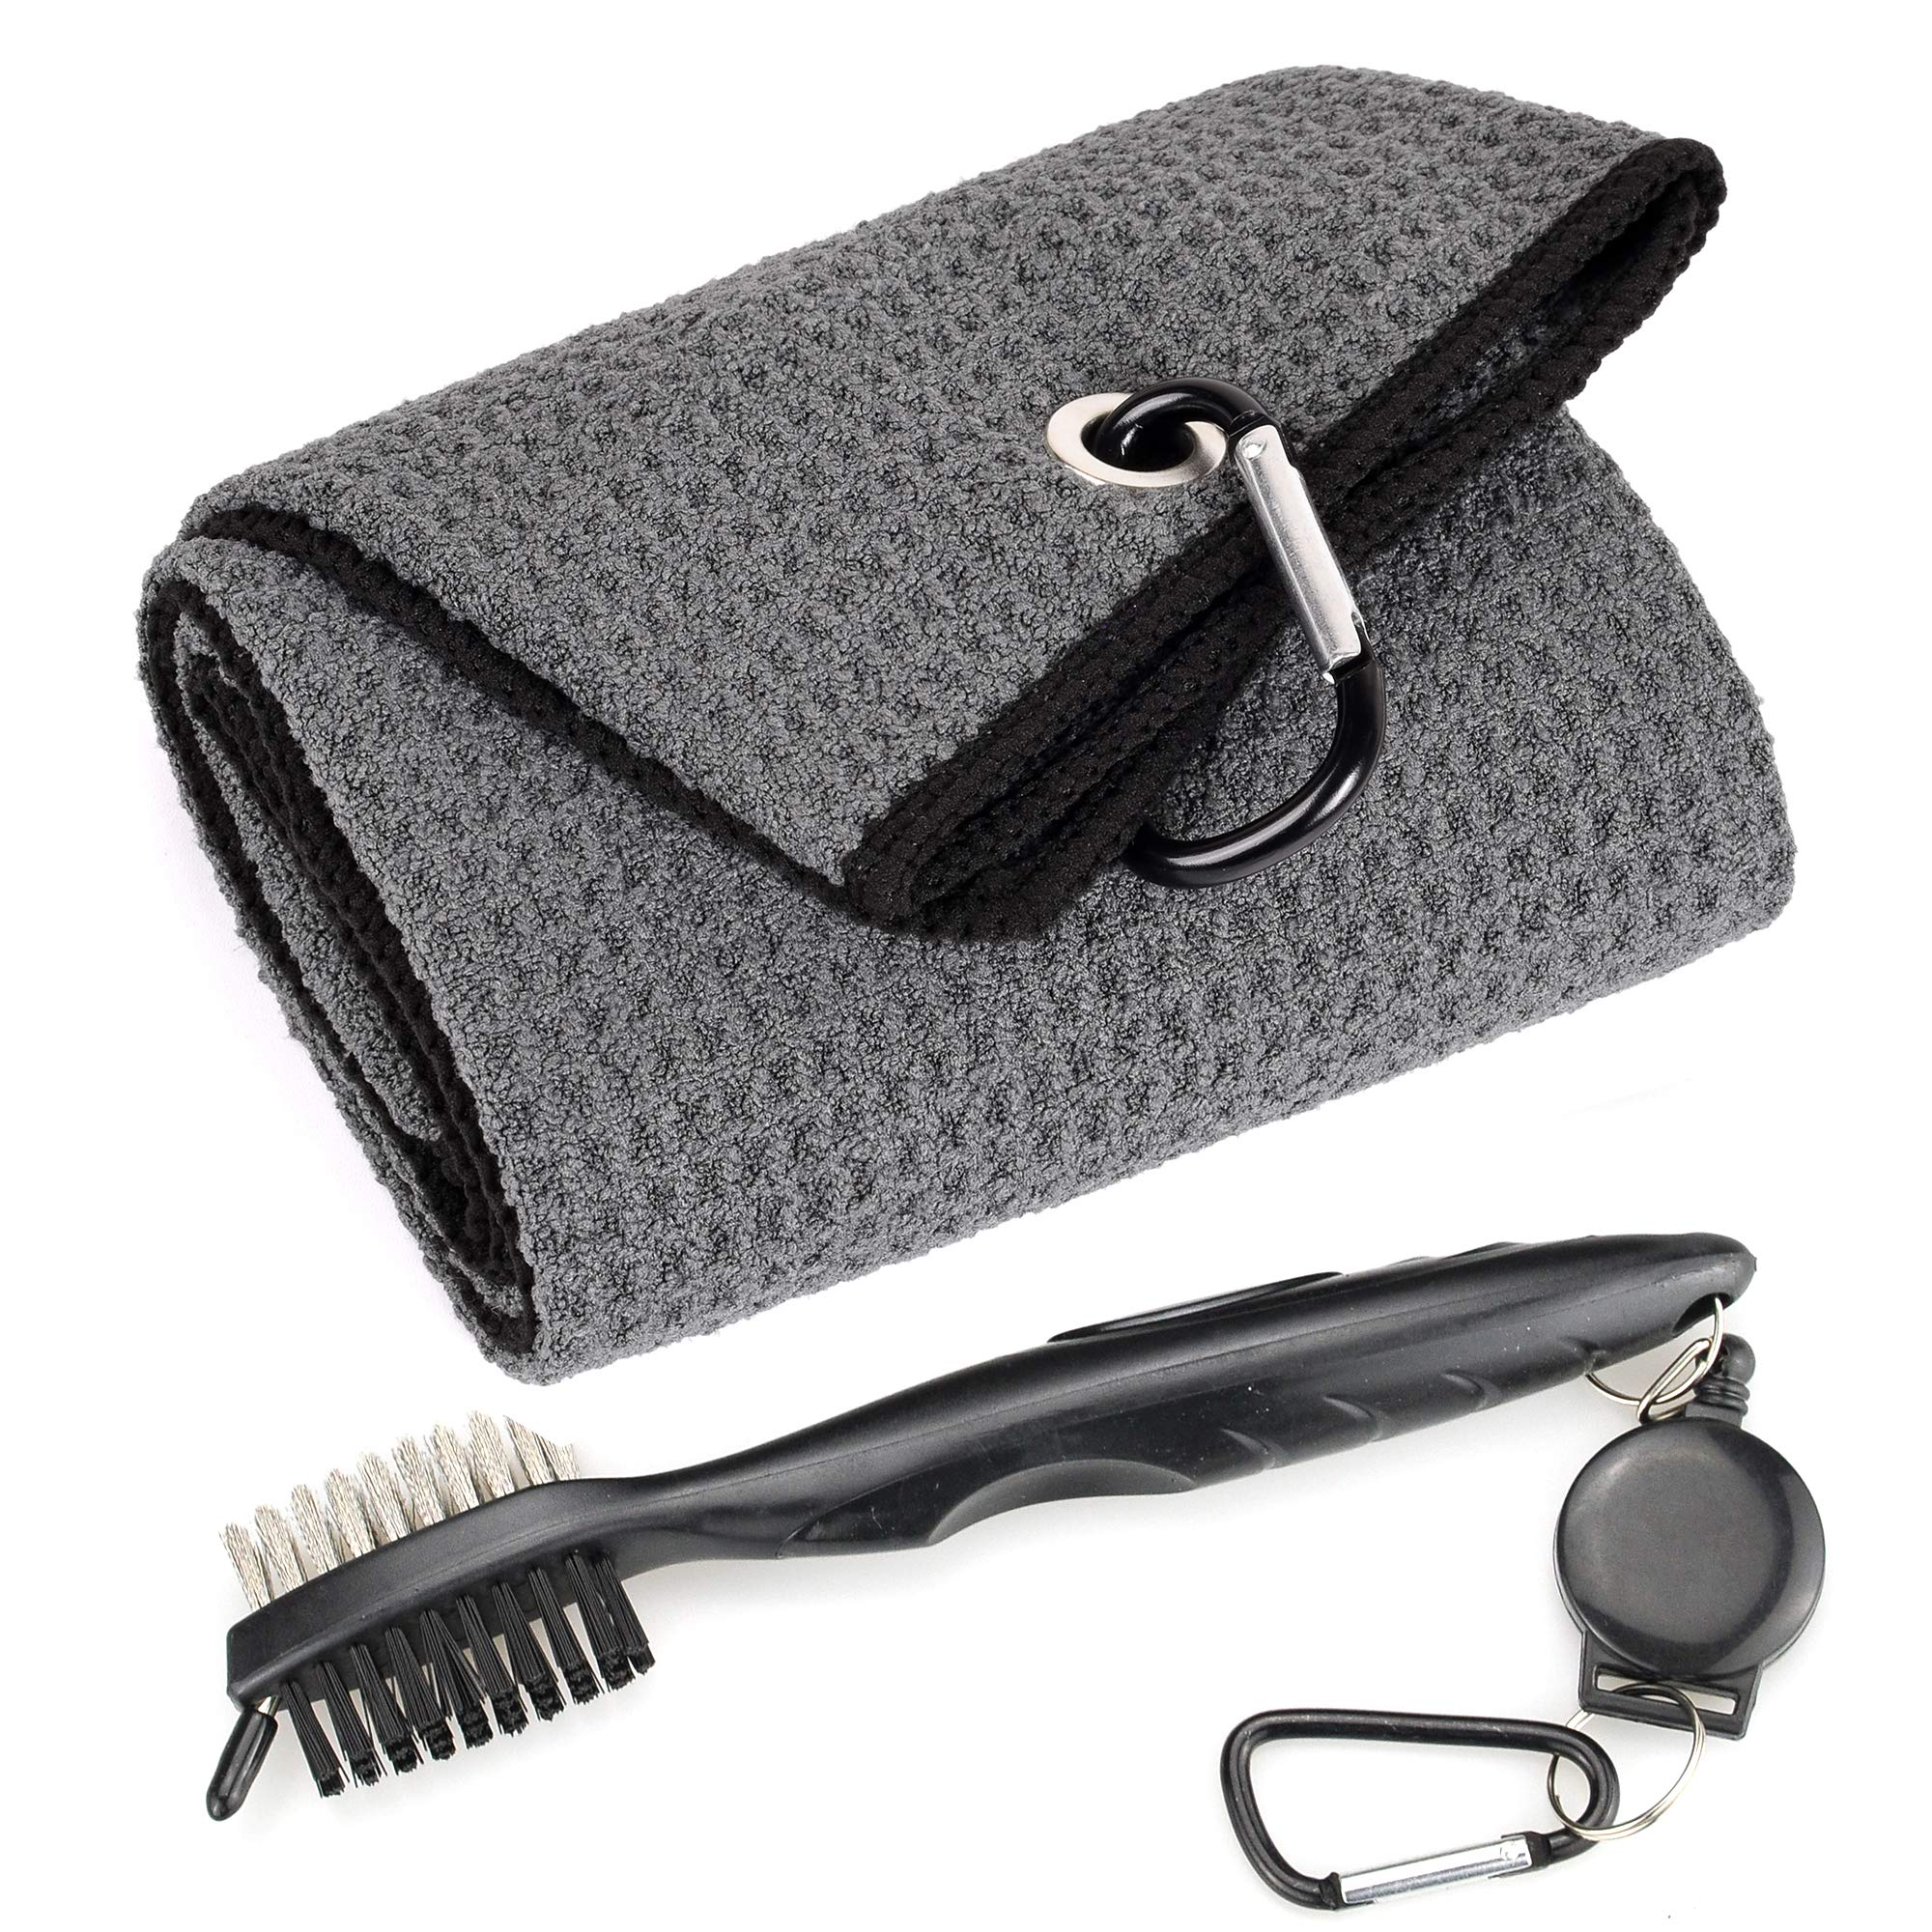 Mile High Life Microfiber Waffle Pattern Tri-fold Golf Towel | Brush Tool Kit with Club Groove Cleaner, Retractable Extension Cord and Clip (Dark Gray Towel+Black Brush) by Mile High Life